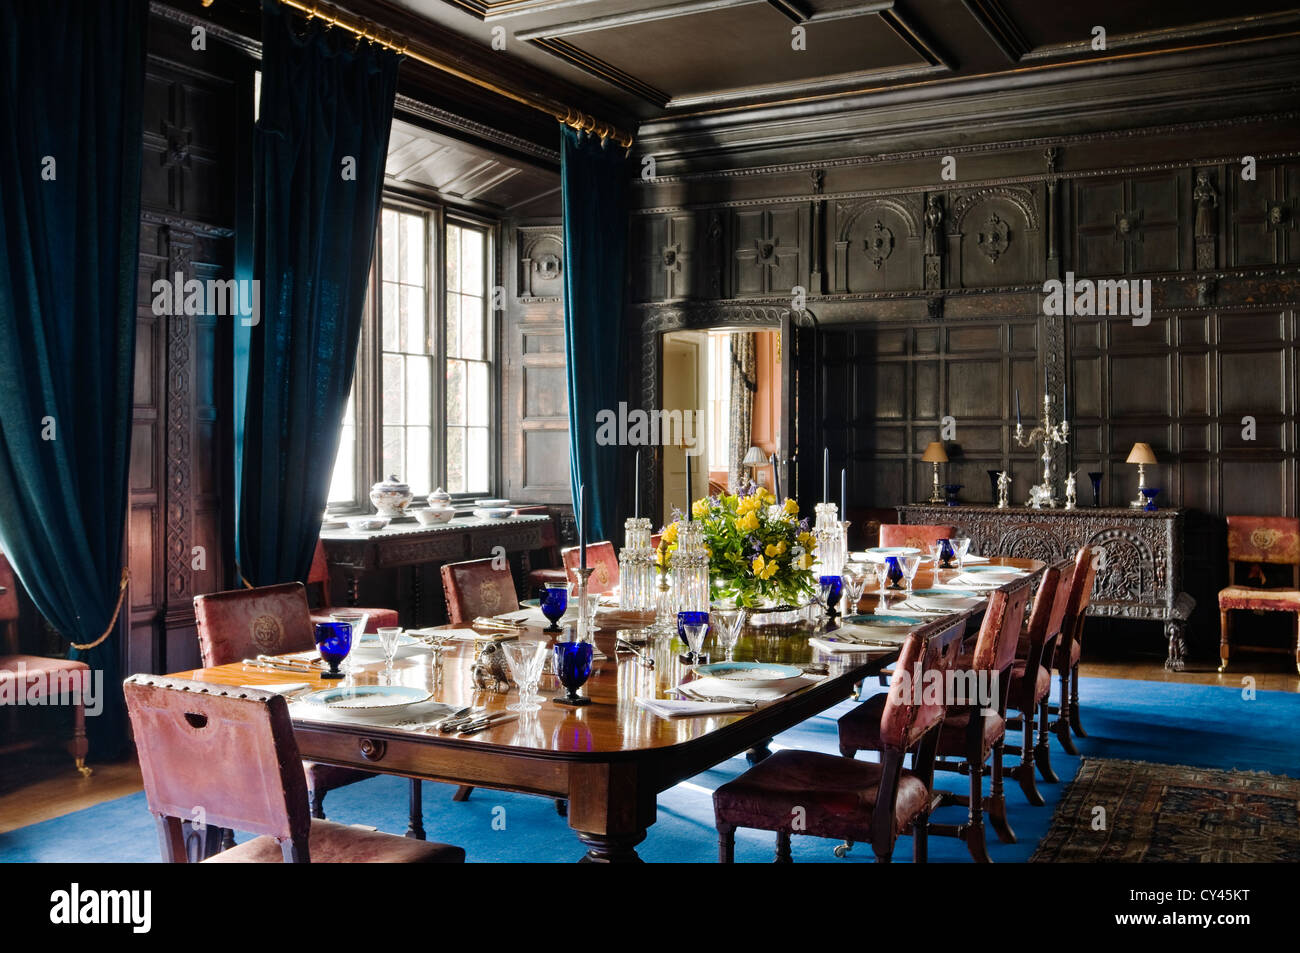 Dining Room With Original Elizabethan Wood Wall Panelling And Royal Blue  Carpet